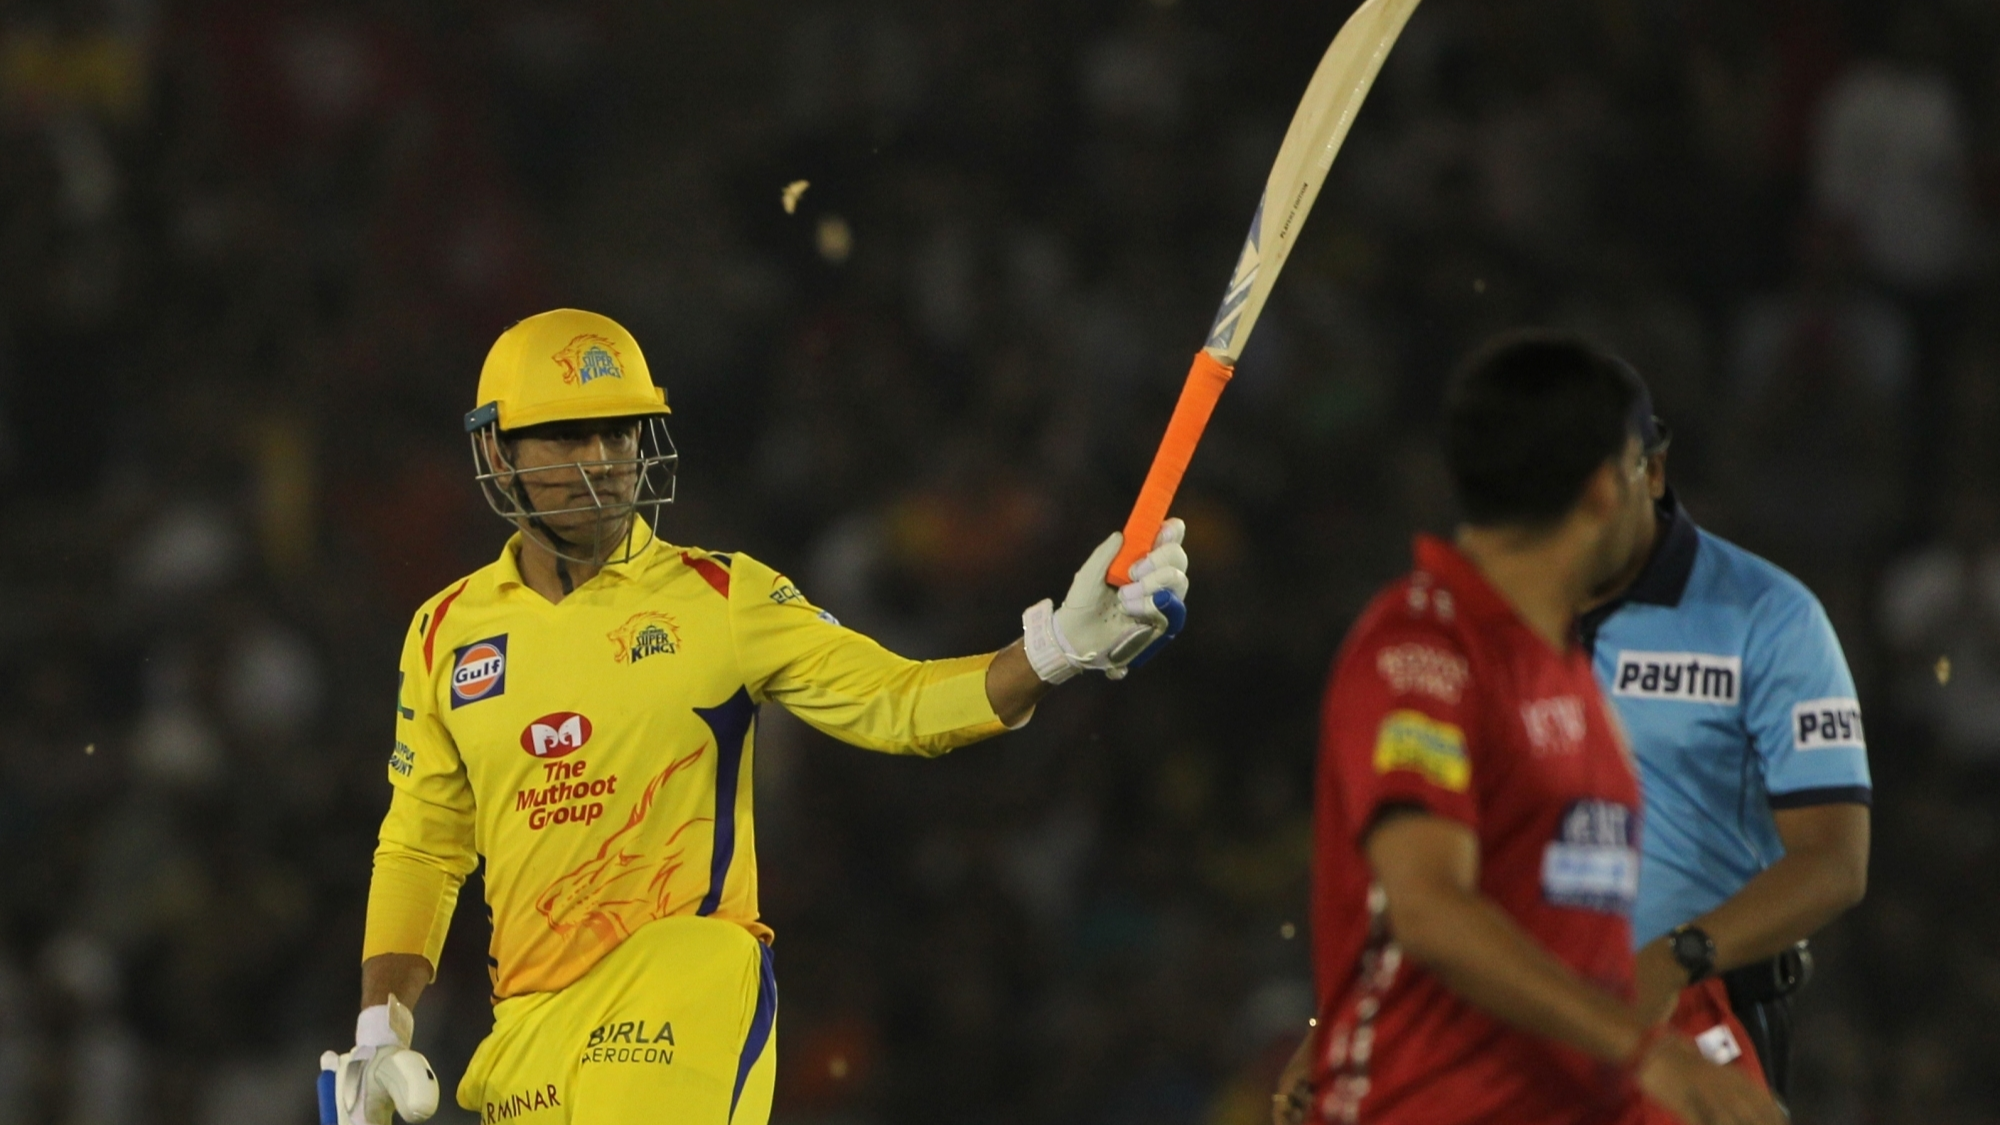 IPL 2018: Virender Sehwag stunned to see MS Dhoni's power hitting against KXIP despite back pain